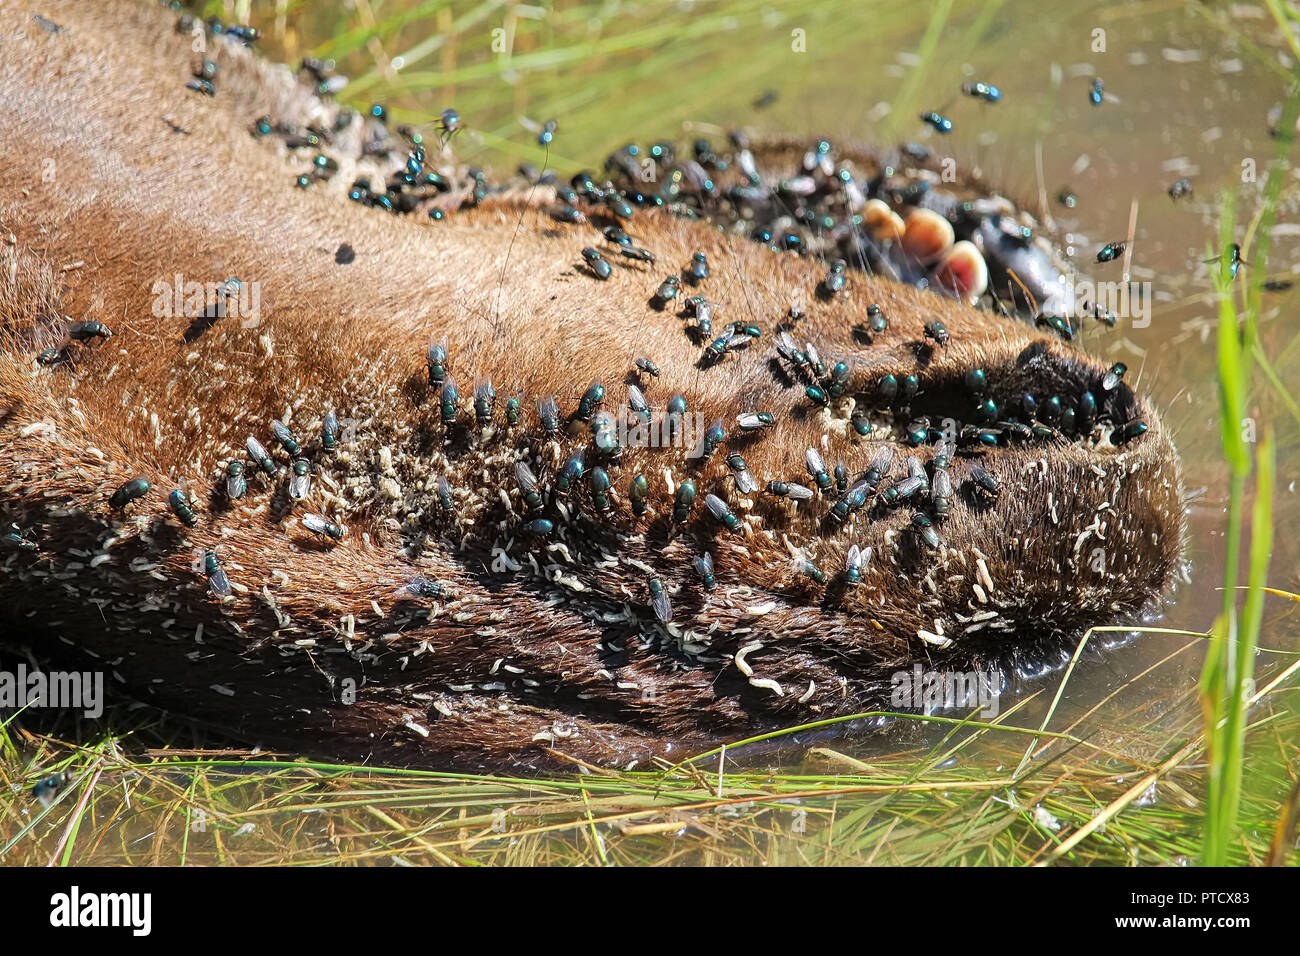 The snot and teeth of a dead ungulate with flies and maggots - Stock Image